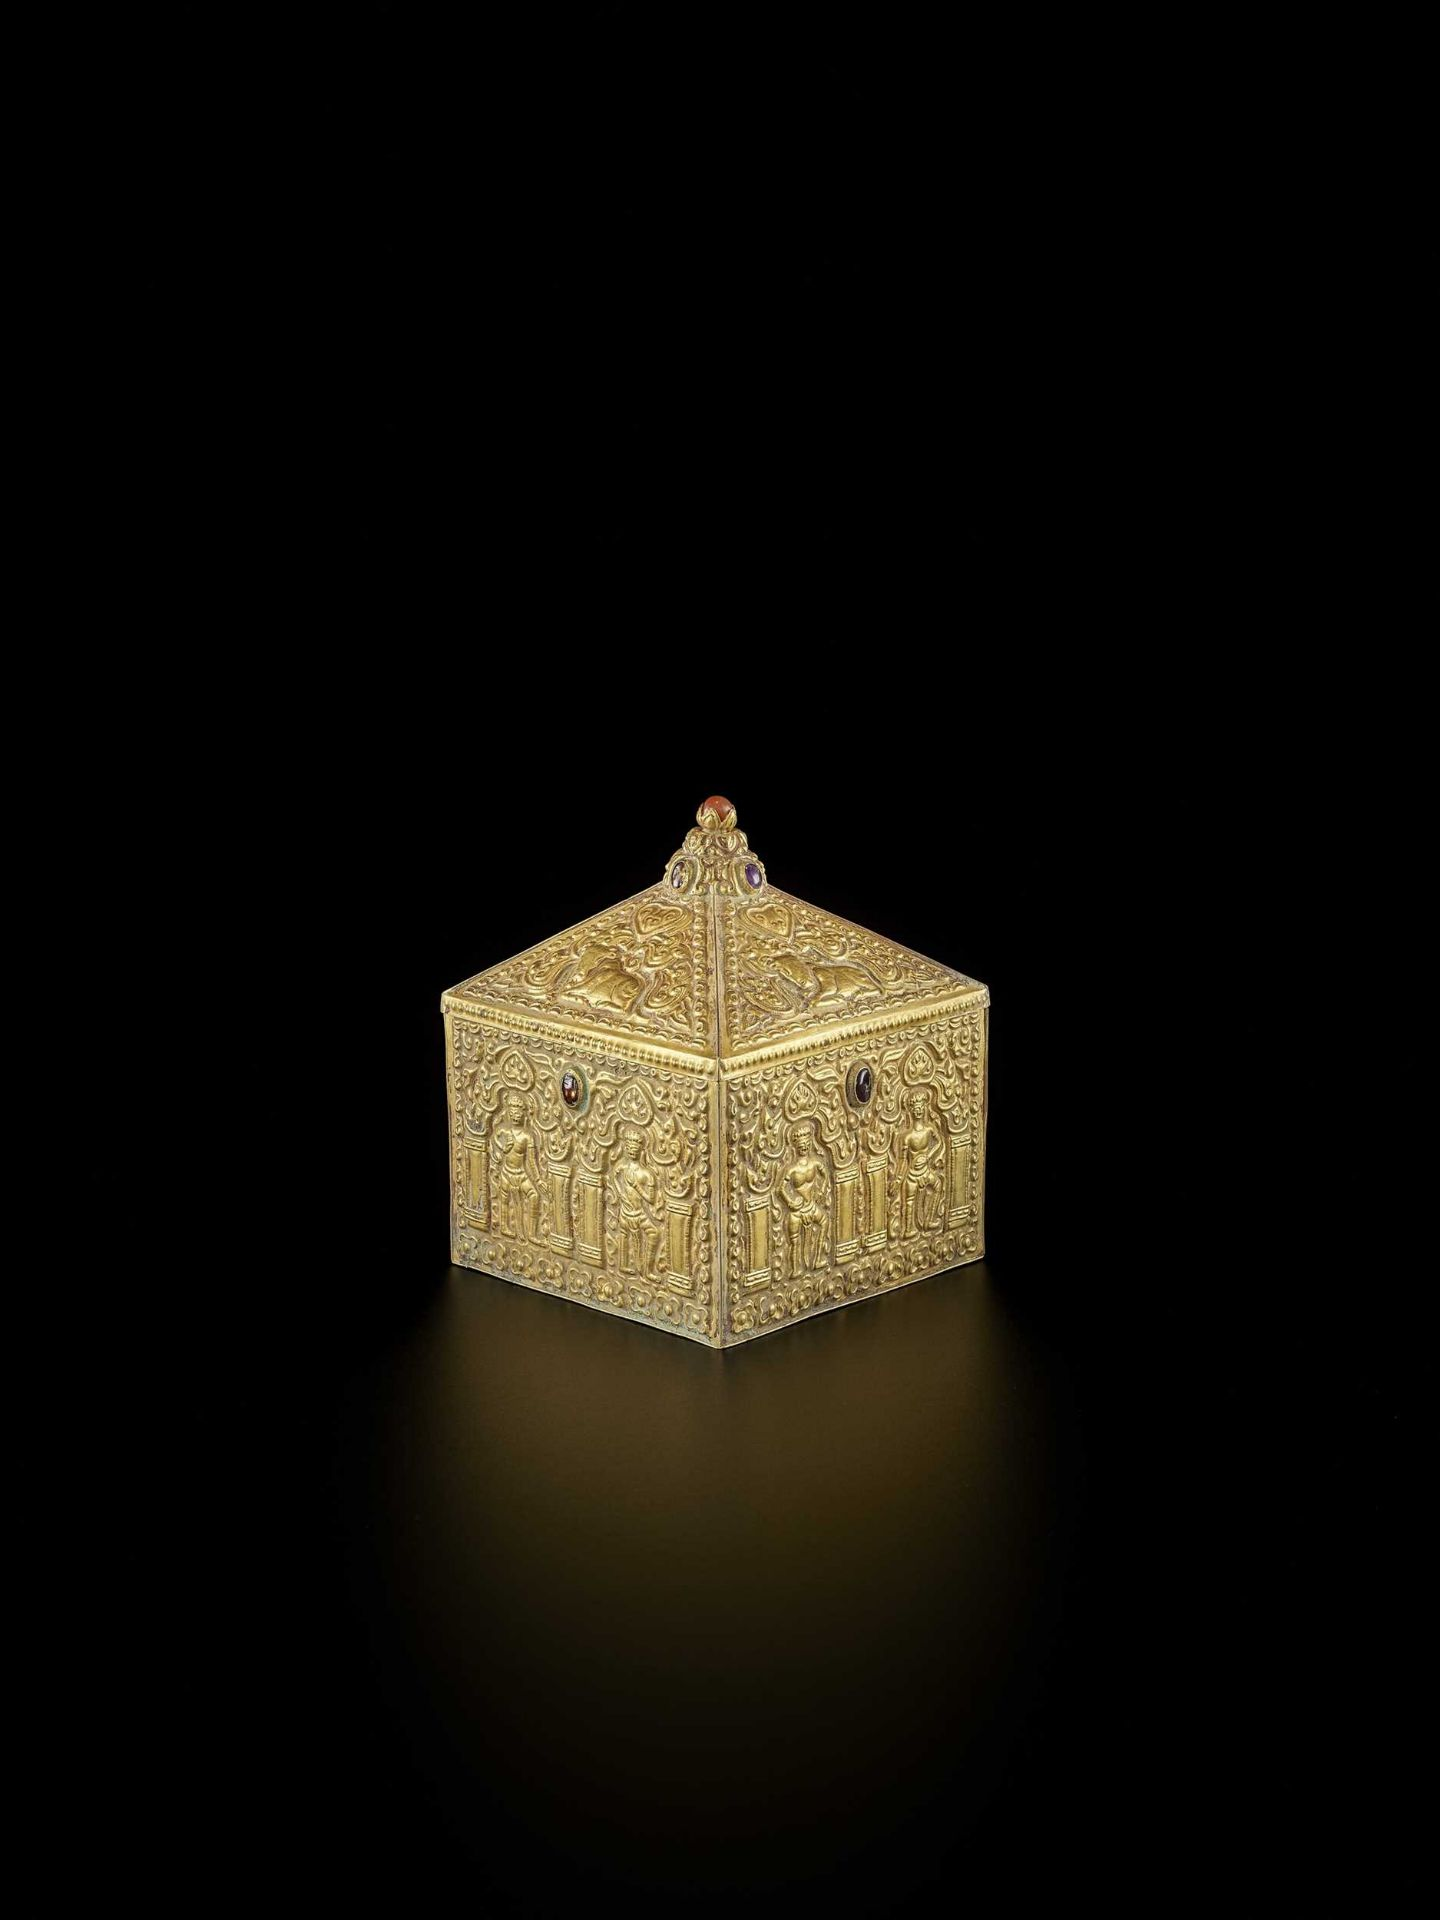 A FINE AND EXTREMELY RARE GEMSTONE-SET CHAM GOLD REPOUSSÉ BOX AND COVER - Bild 9 aus 10